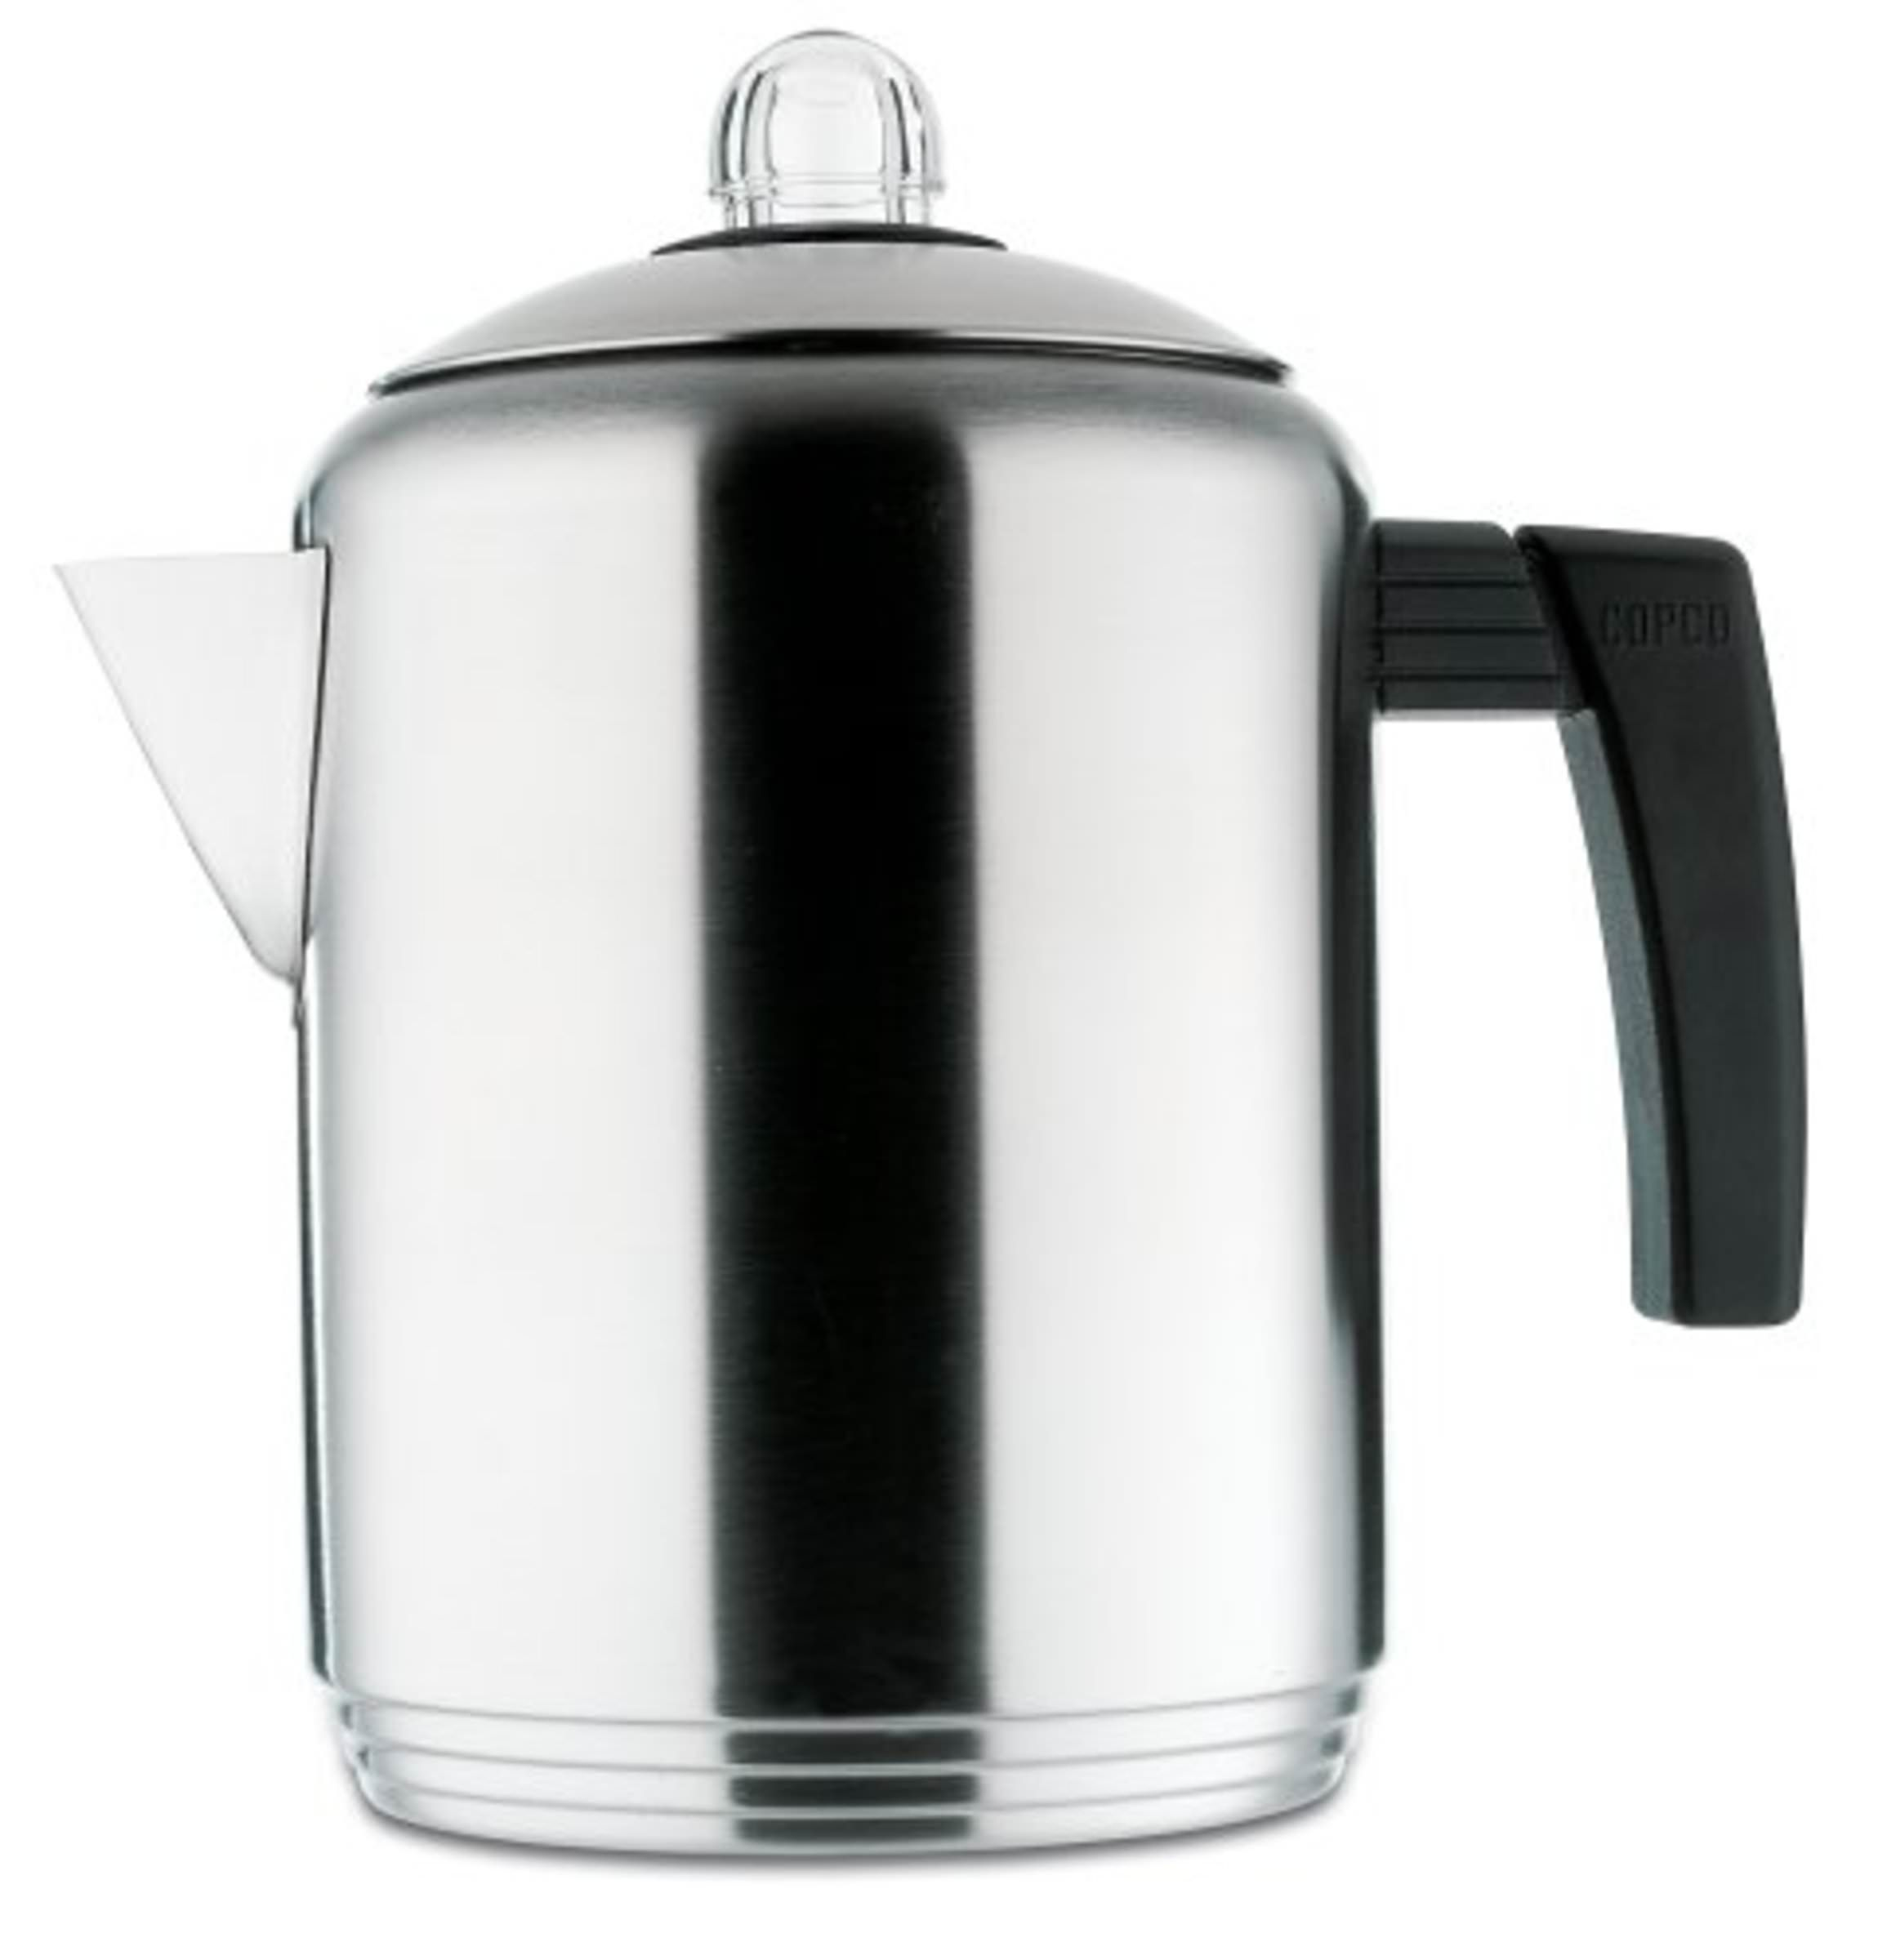 Home in 2020 Brushed stainless steel, Percolator, Stainless